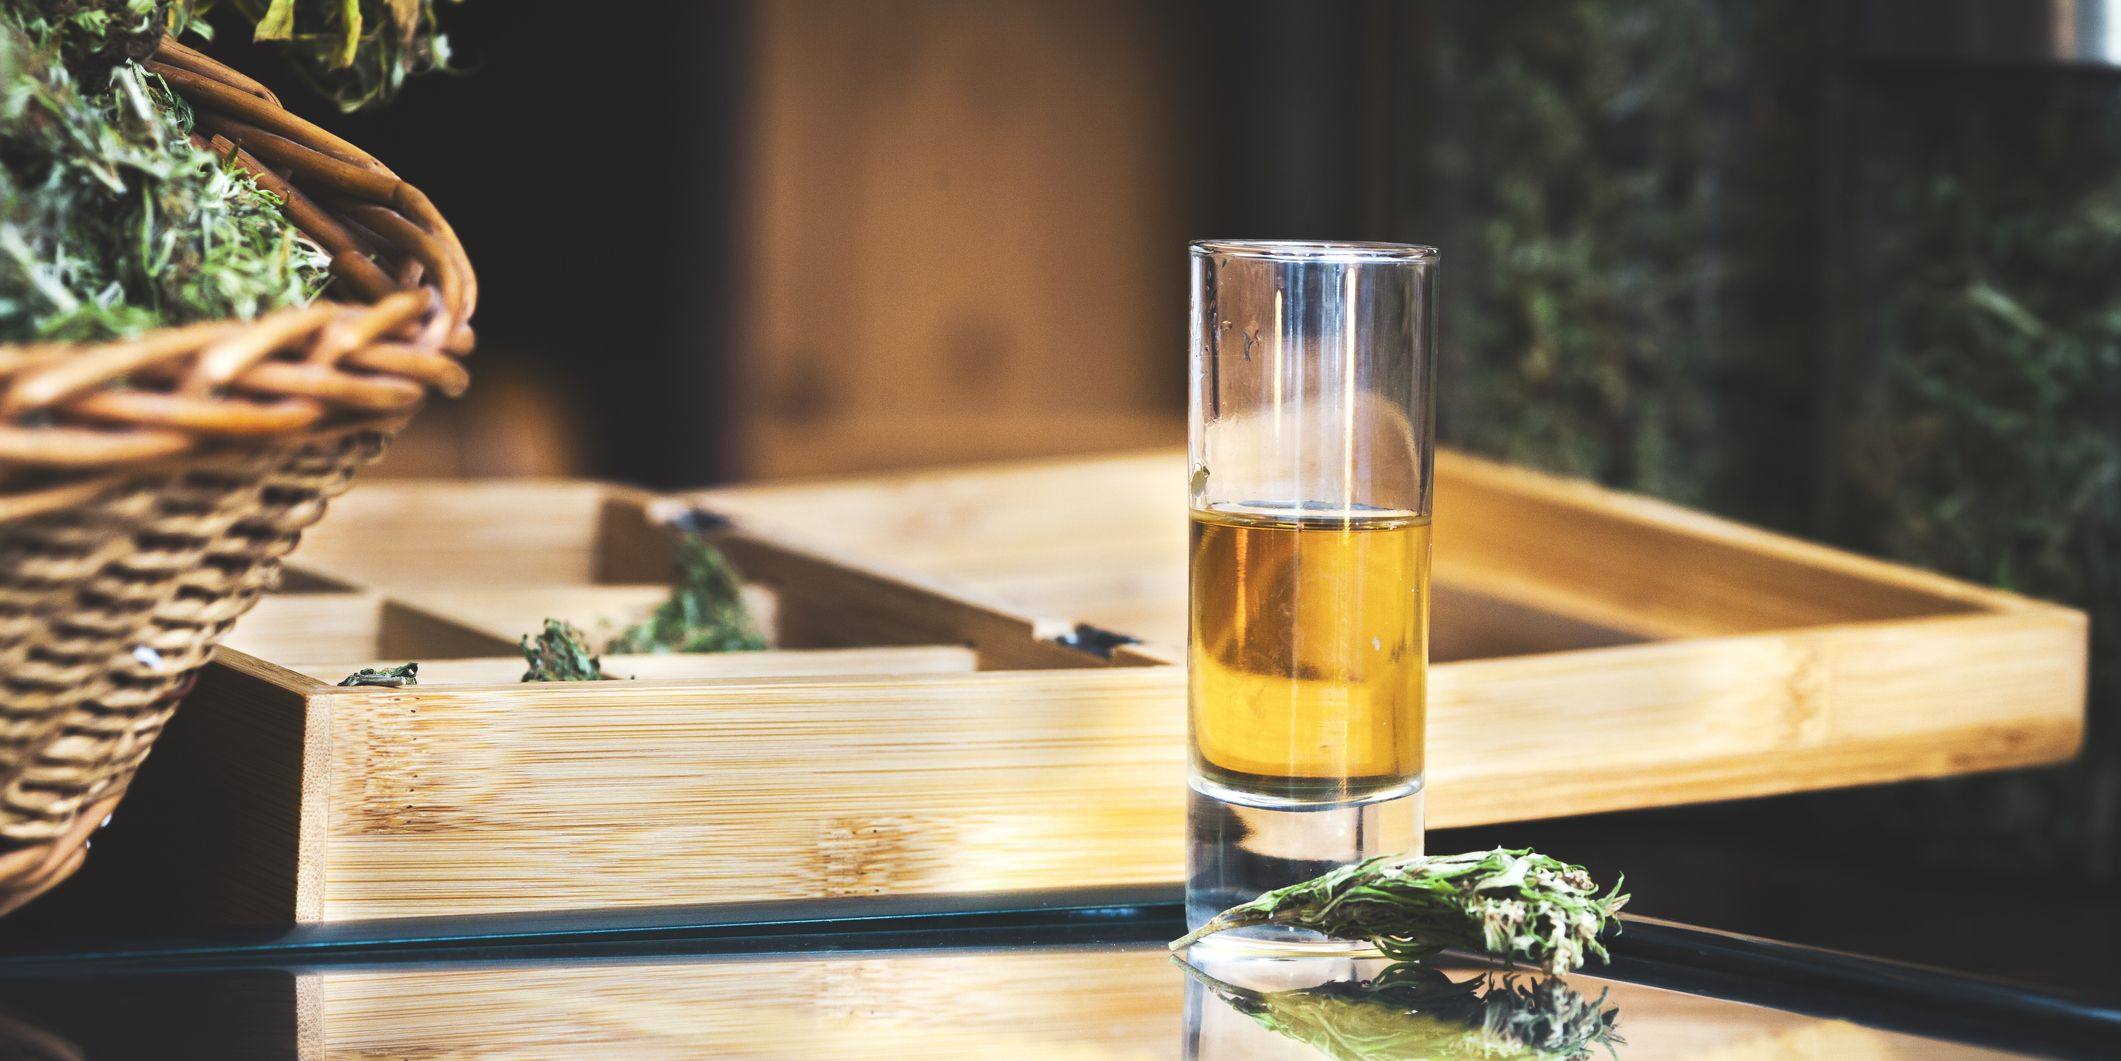 Shot of Cannabis Liquor on Table